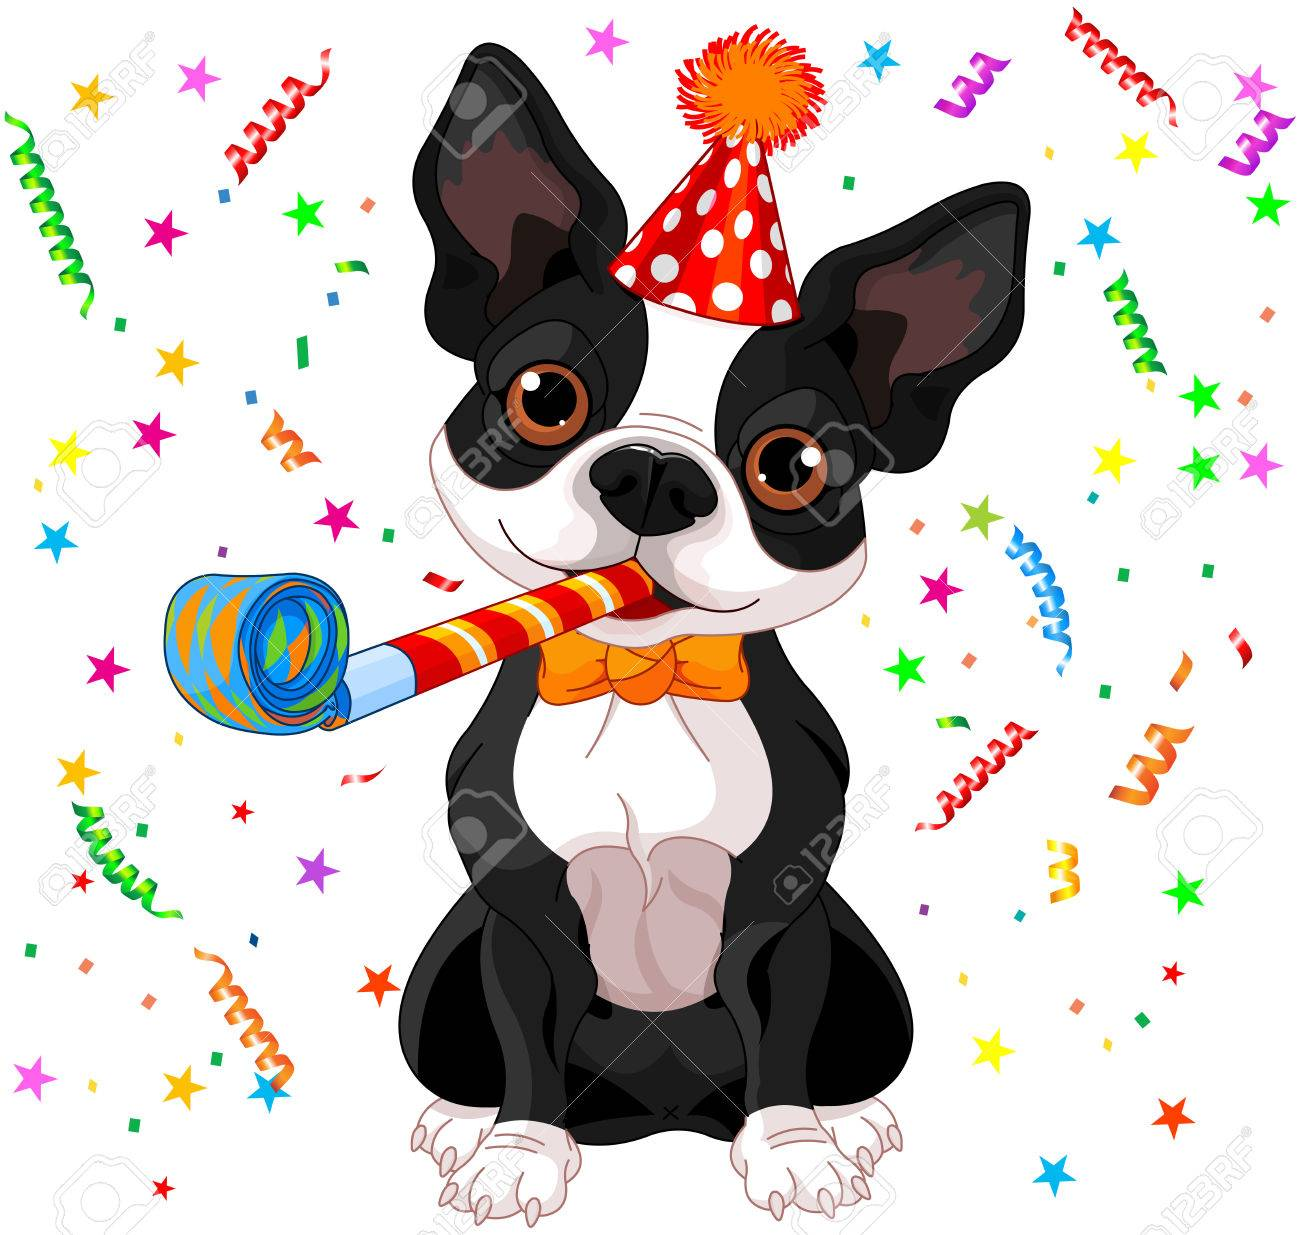 Eviter les jeux de lancer de balle, de bâton ou de pouic-pouic: pourquoi? - Page 17 35588778-illustration-of-cute-boston-terrier-celebrating